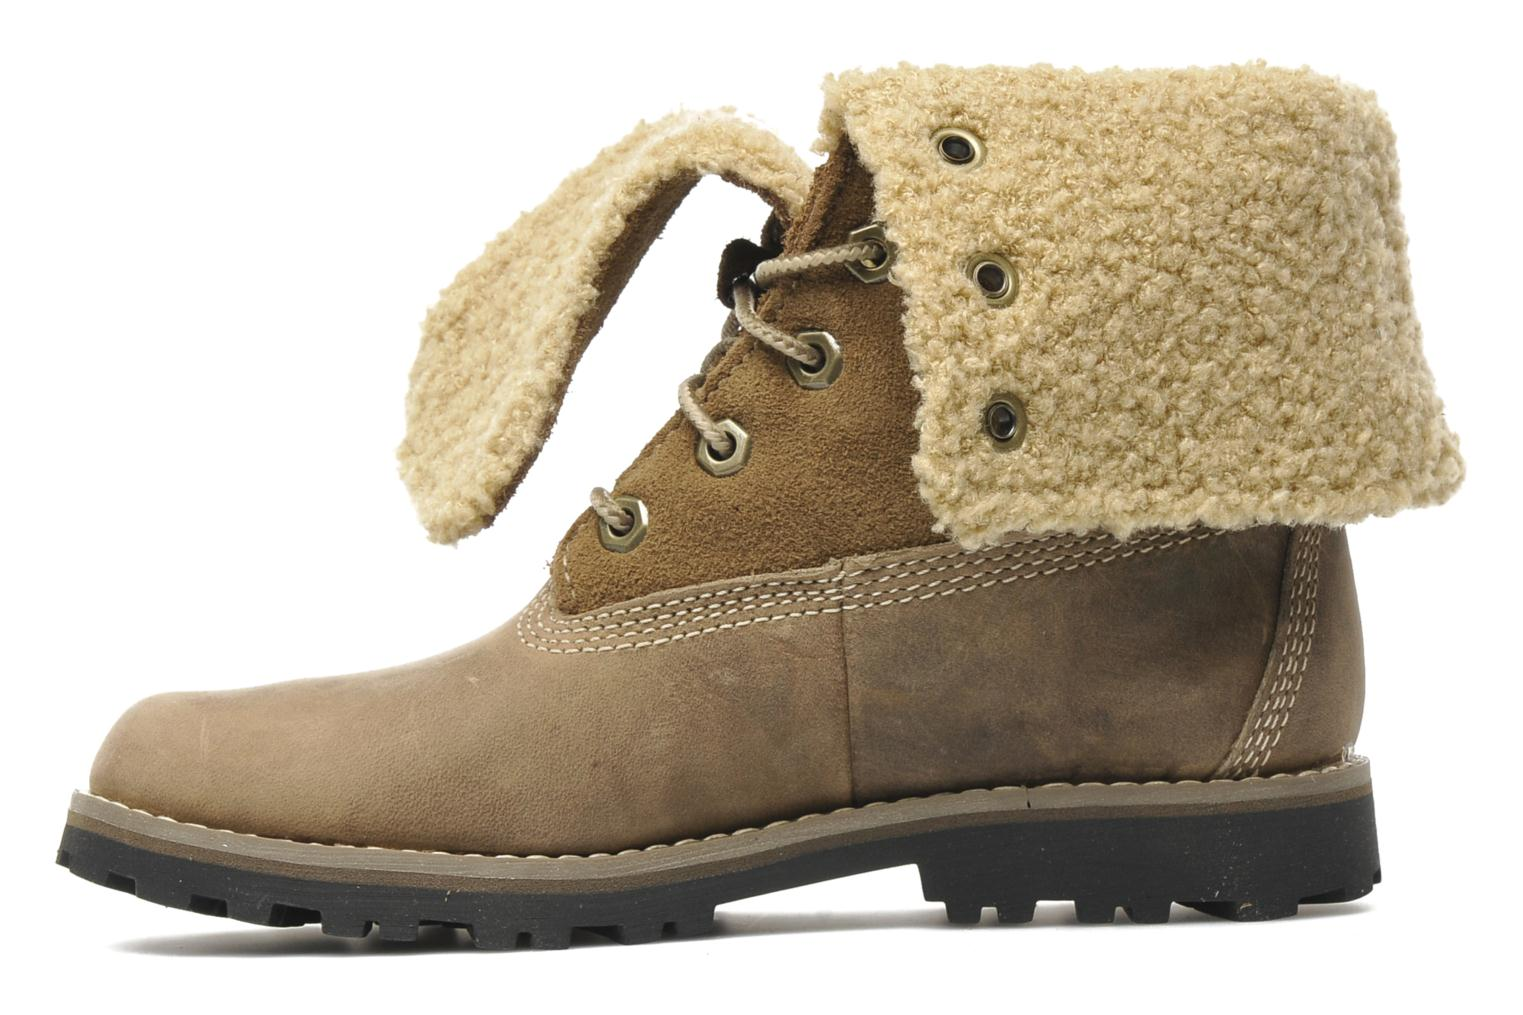 Bottines et boots Timberland 6 In Waterproof Shearling Boot Beige vue face